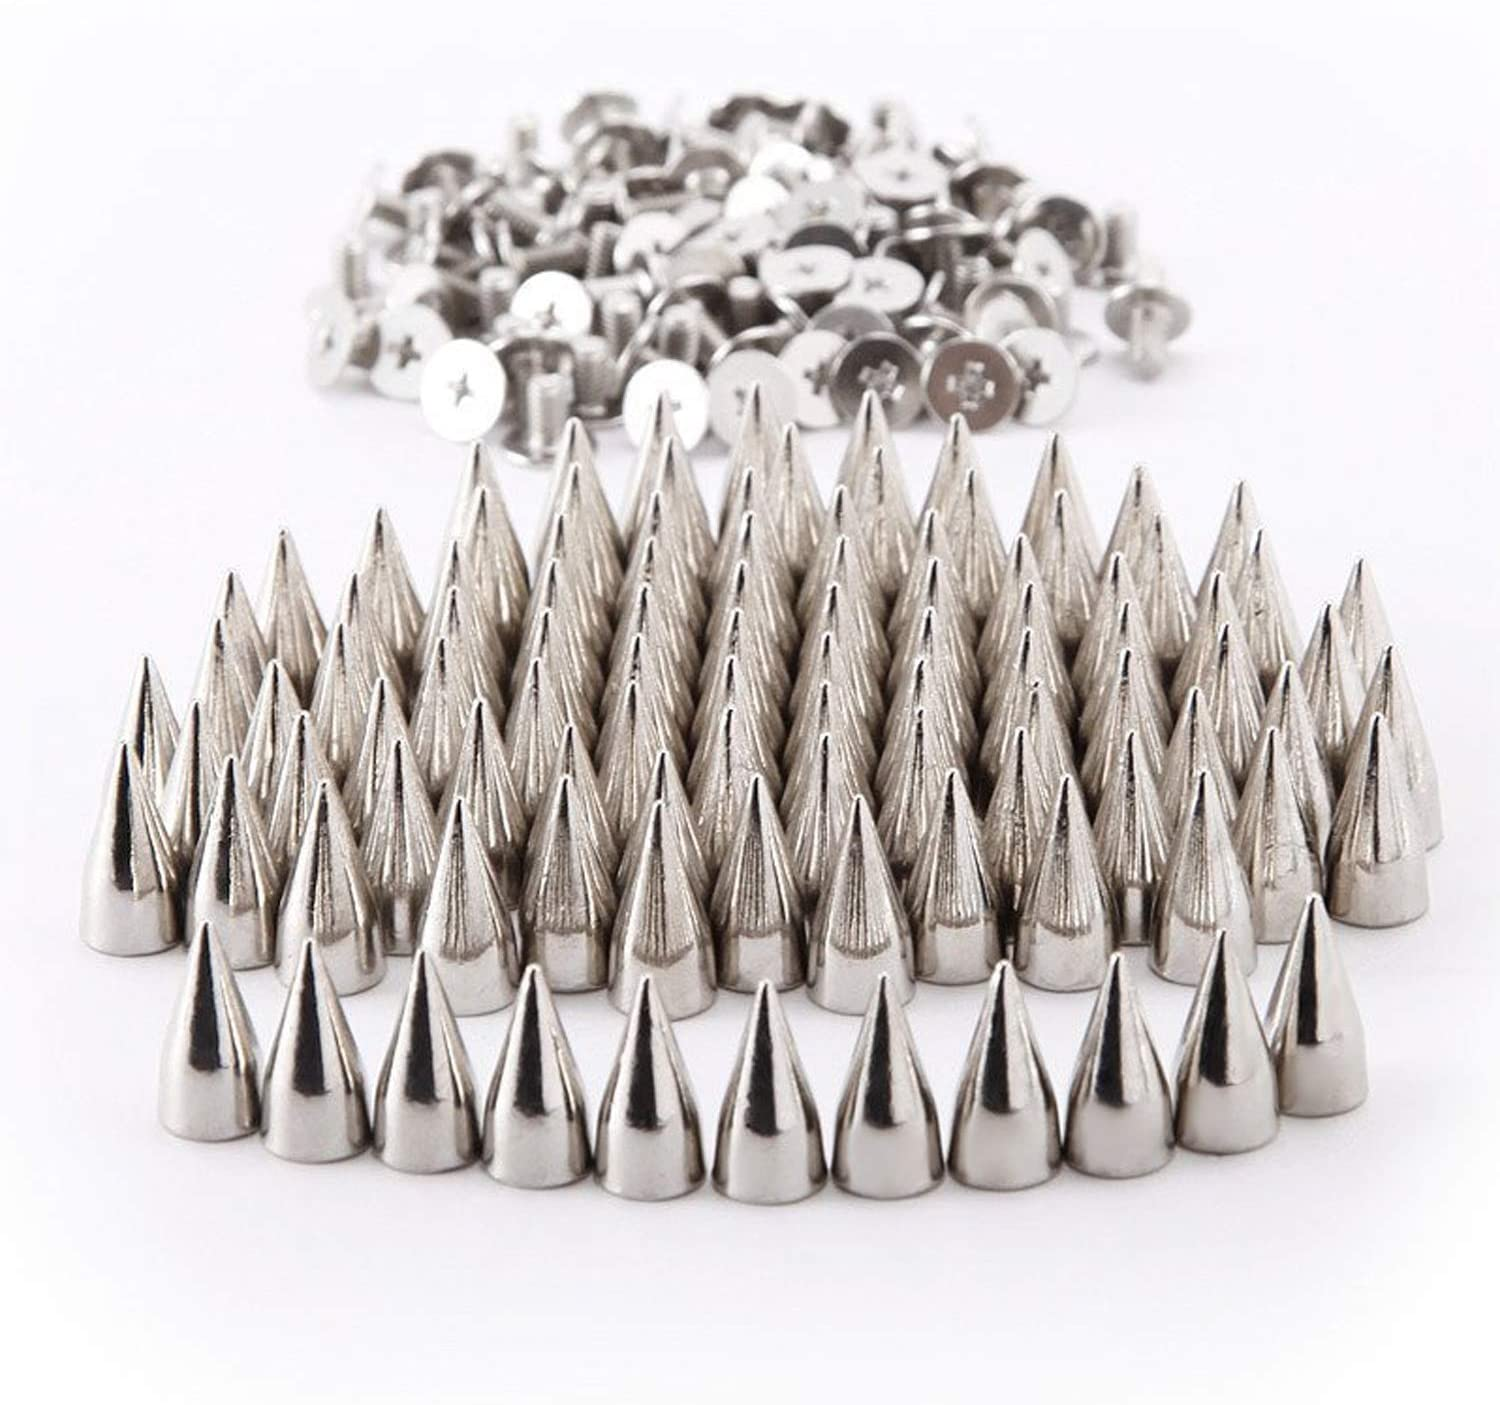 RUBYCA 50 Sets 13MM Silver Color Bullet Cone Spike and Stud Metal Screw Back for DIY Leather-Craft